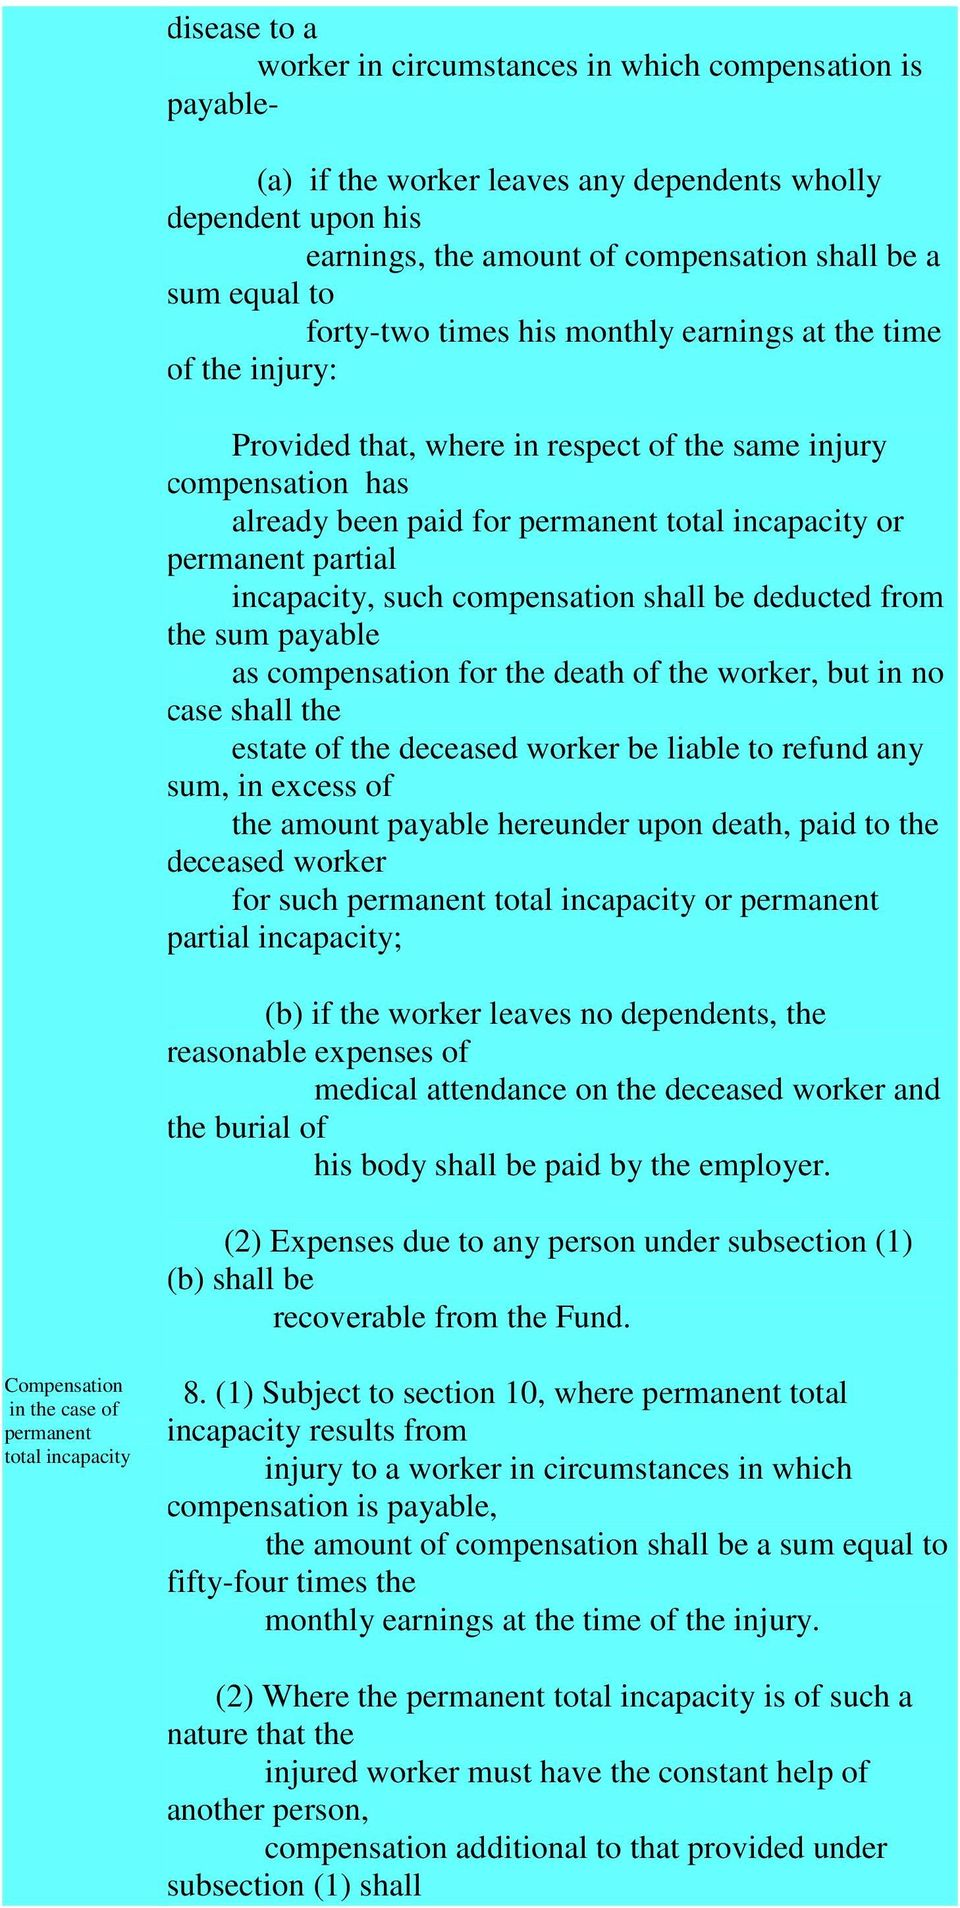 partial incapacity, such compensation shall be deducted from the sum payable as compensation for the death of the worker, but in no case shall the estate of the deceased worker be liable to refund